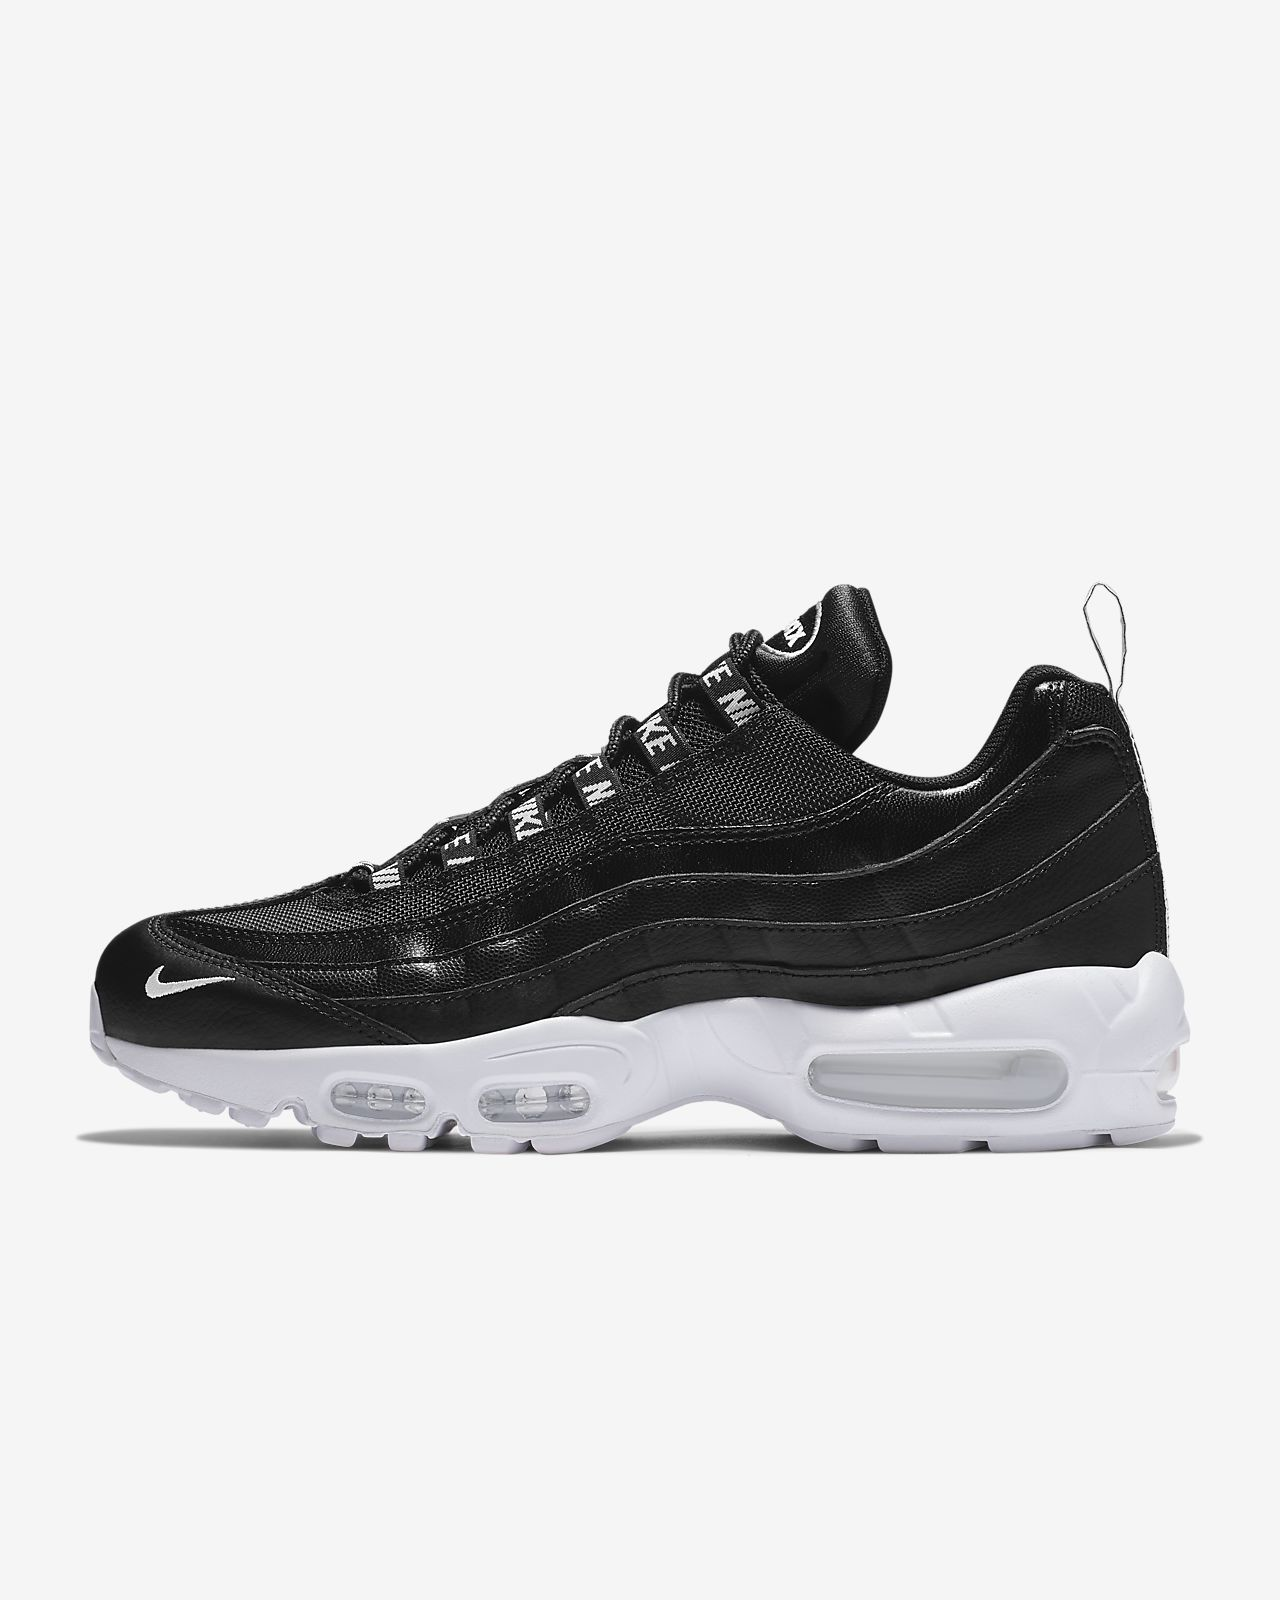 buy online 2954f 443ba Nike Air Max 95 Premium Men's Shoe